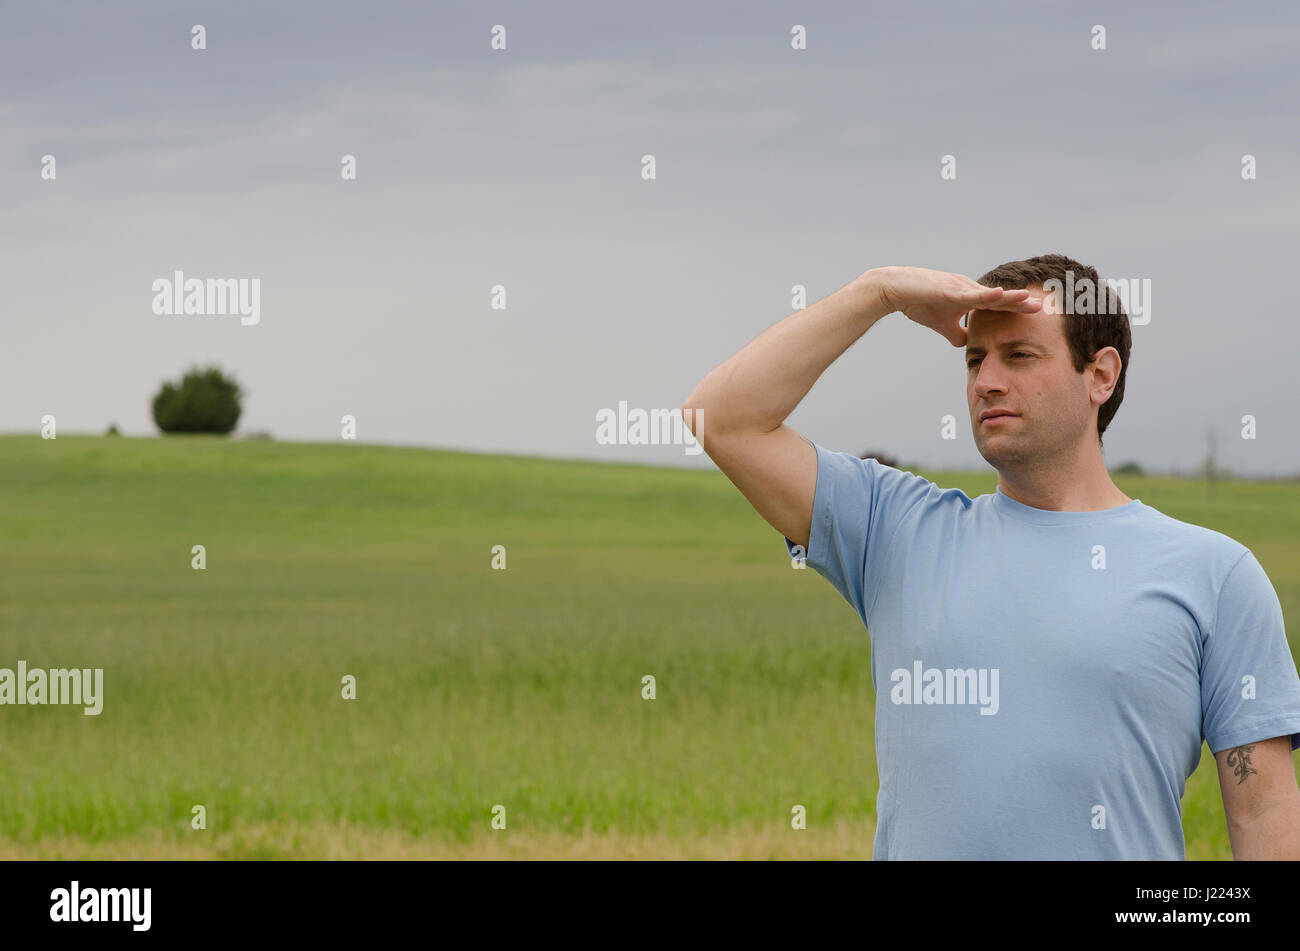 Man with hand on his forehead looking off into the distance with a grassy field in the background. - Stock Image